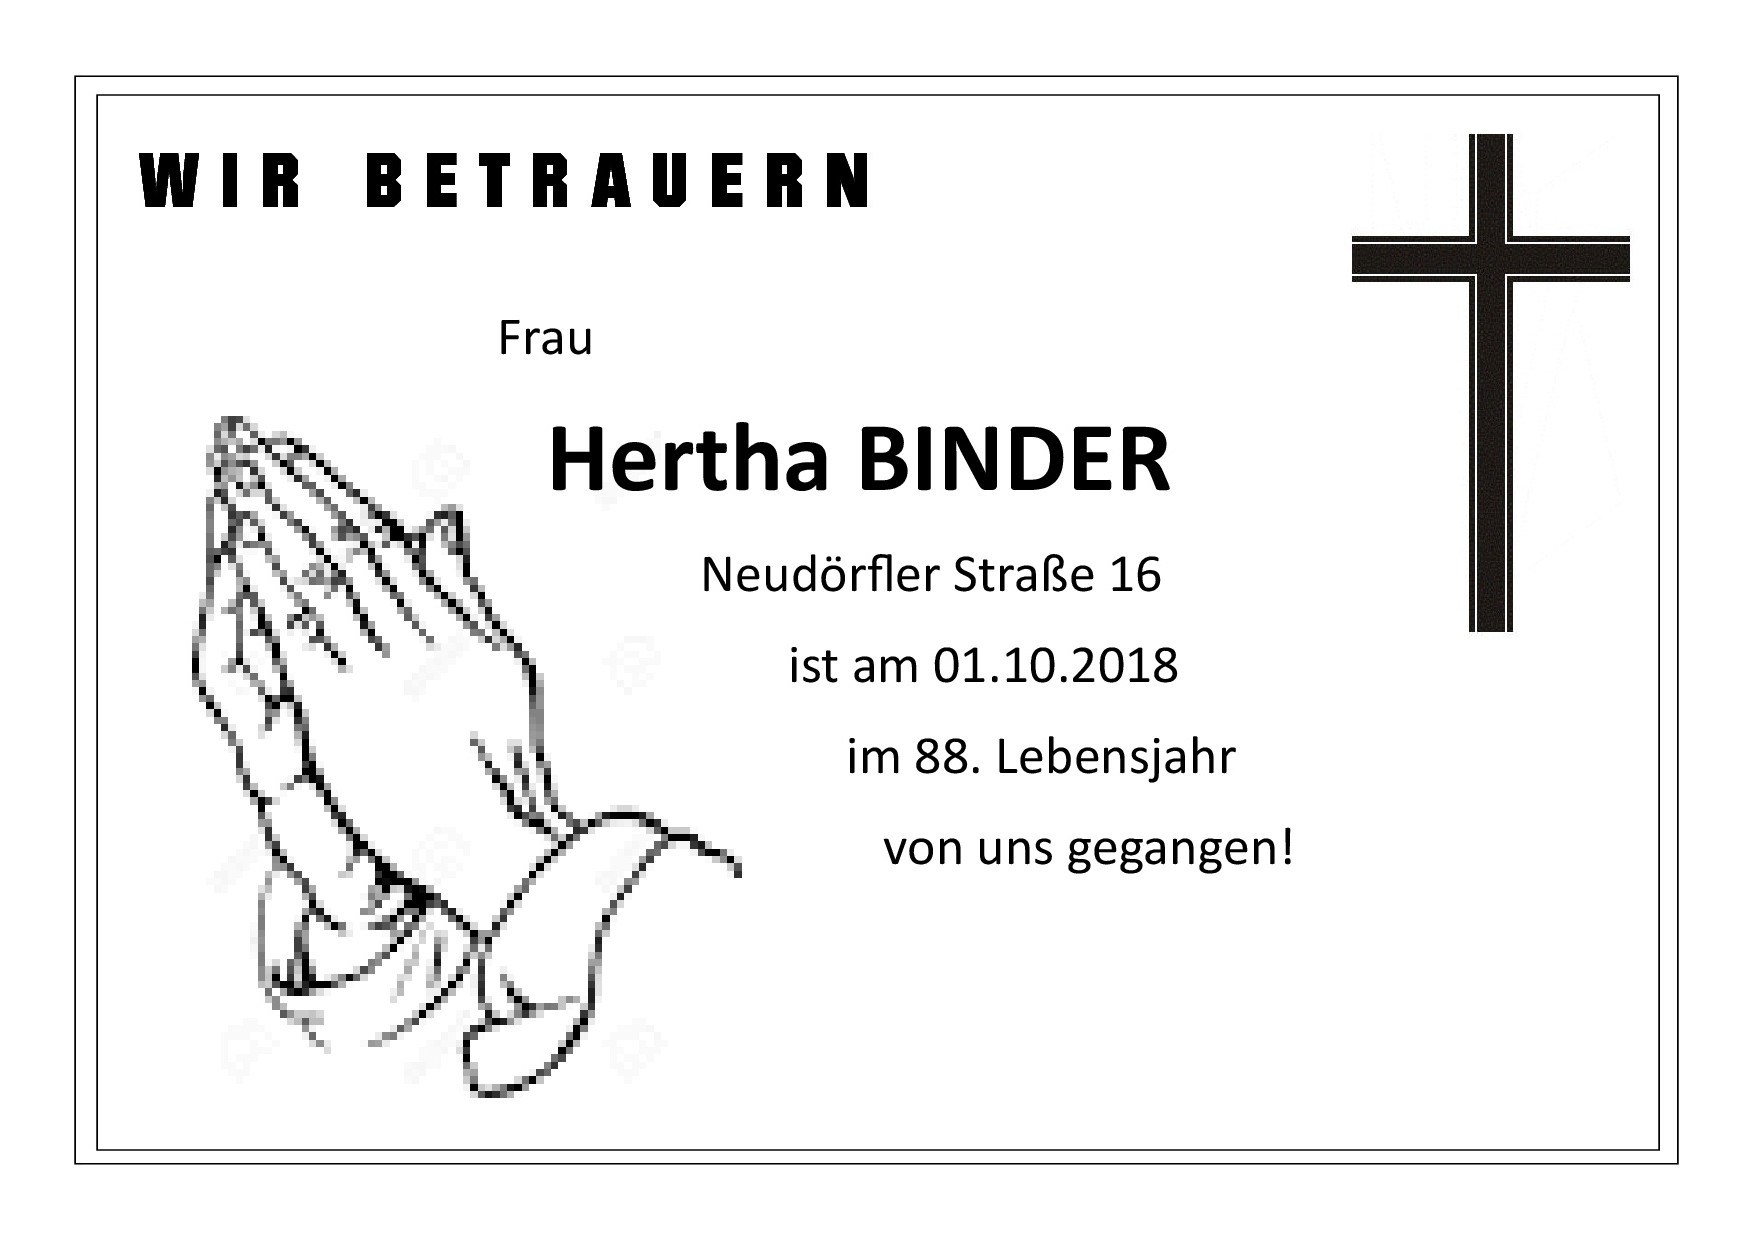 Hertha Binder